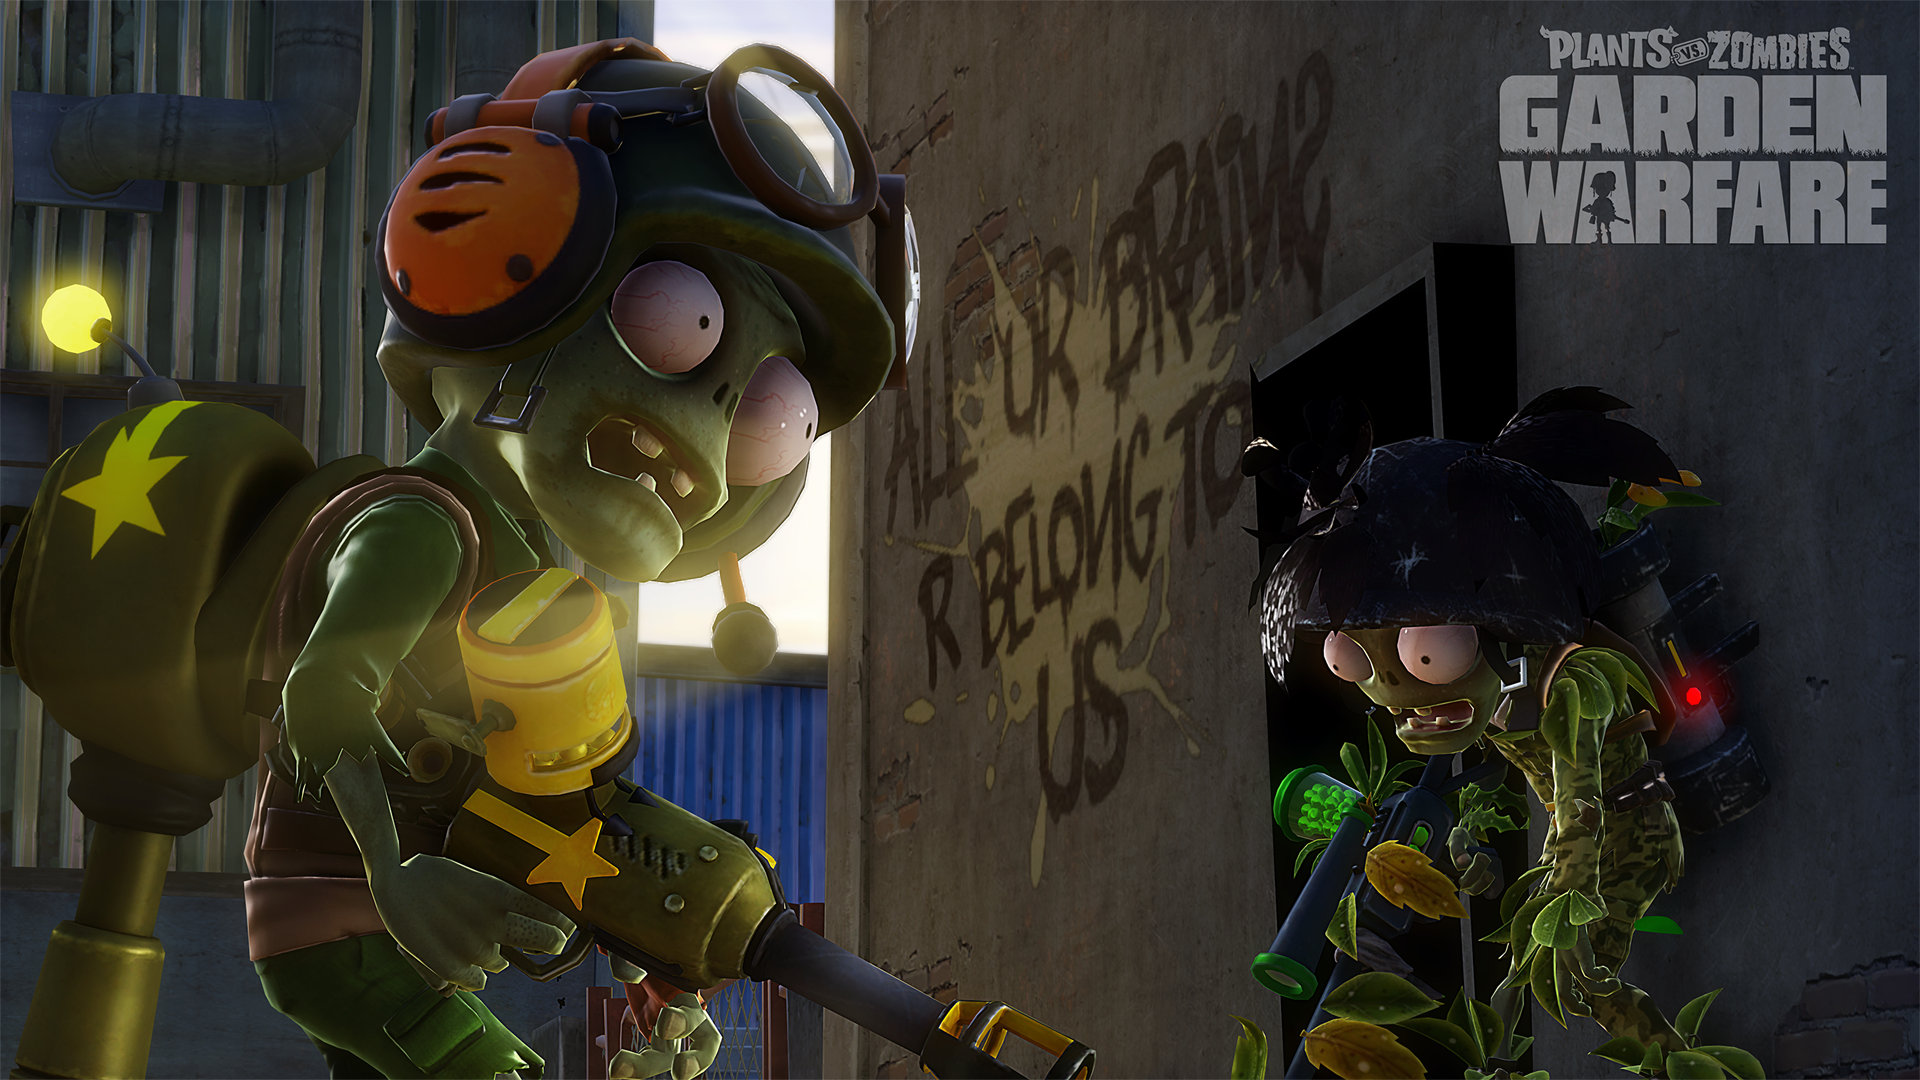 Plants vs. Zombies: Garden Warfare (2014) promotional art - MobyGames